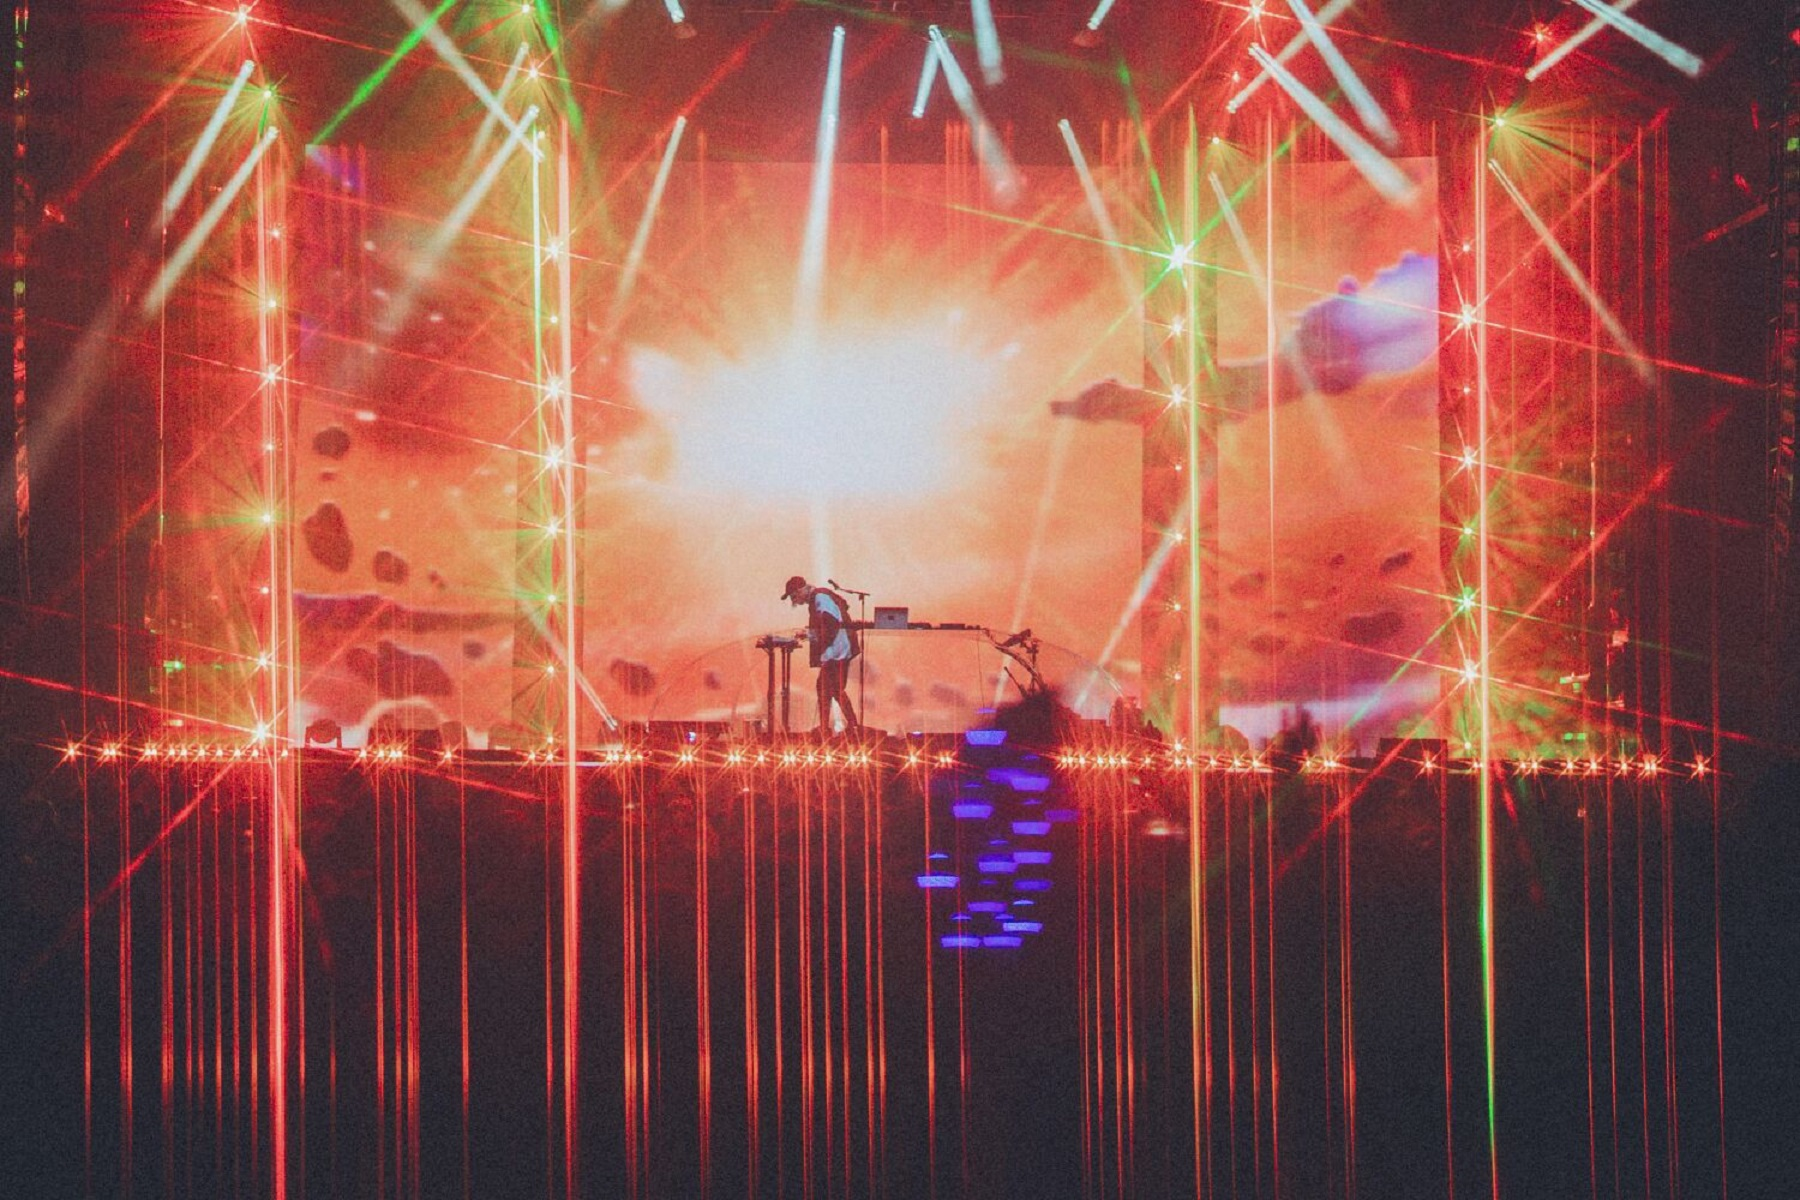 PORTER ROBINSON'S SECOND SKY FESTIVAL CONCLUDES TO GREAT SUCCESS